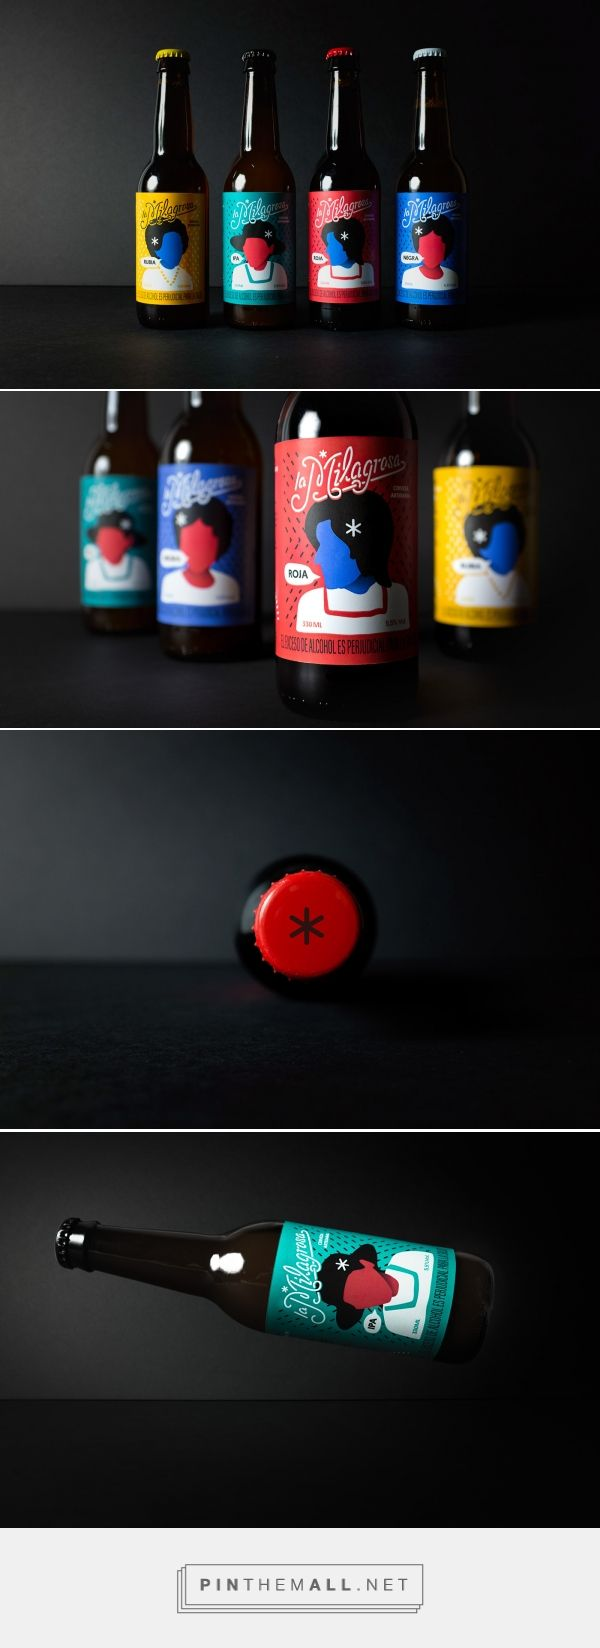 La Milagrosa / La Milagrosa is a beer done with love in the capital of Colombia – Bogotá. design by Tata&Friends